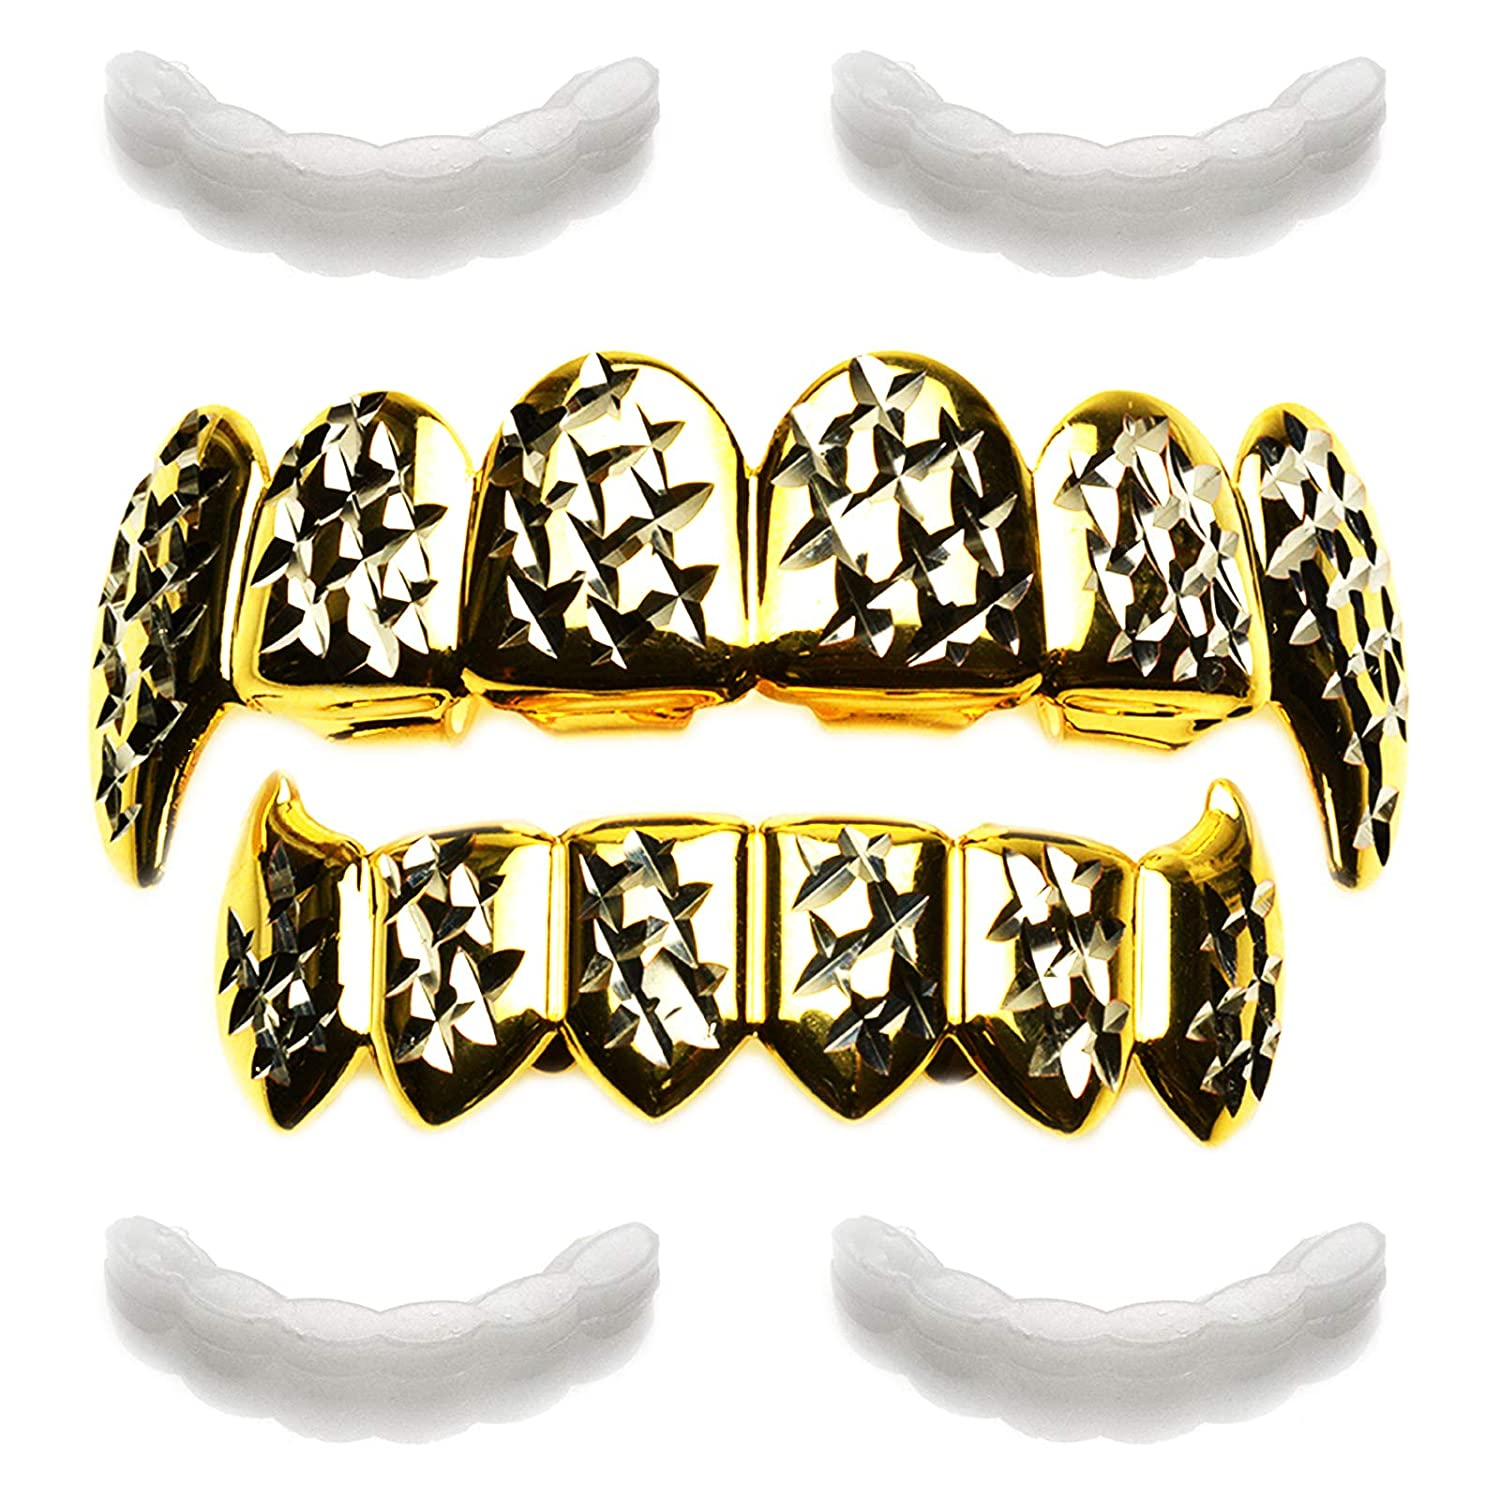 Vampire Fangs Gold Plated Diamond Cut Grillz with 4pc Fixing Bar LS 020-C2-G